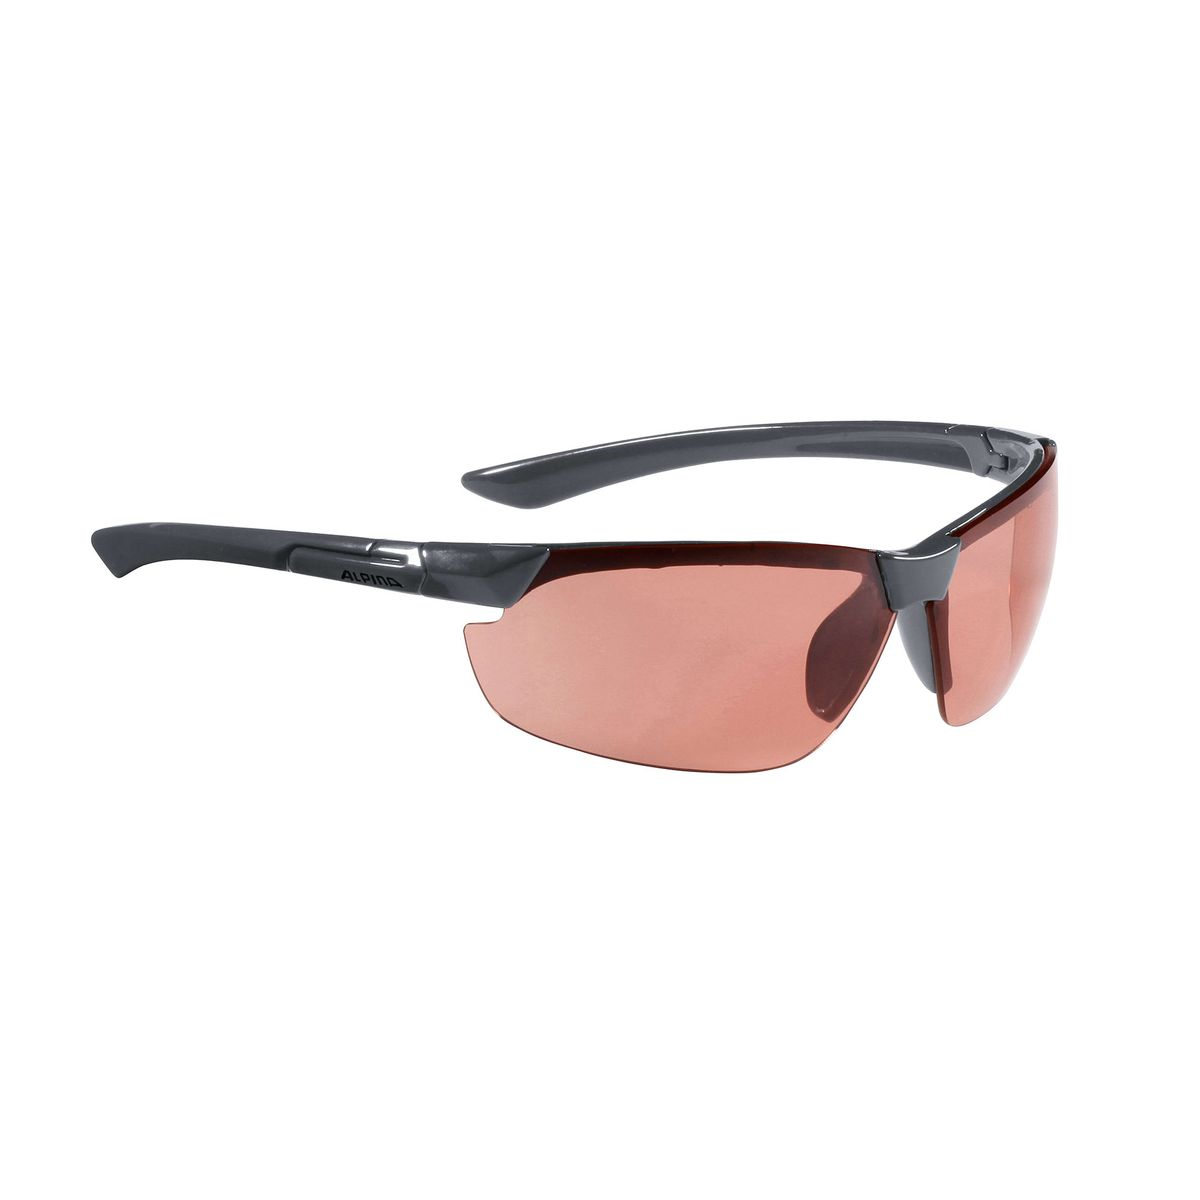 DRAFF sports glasses